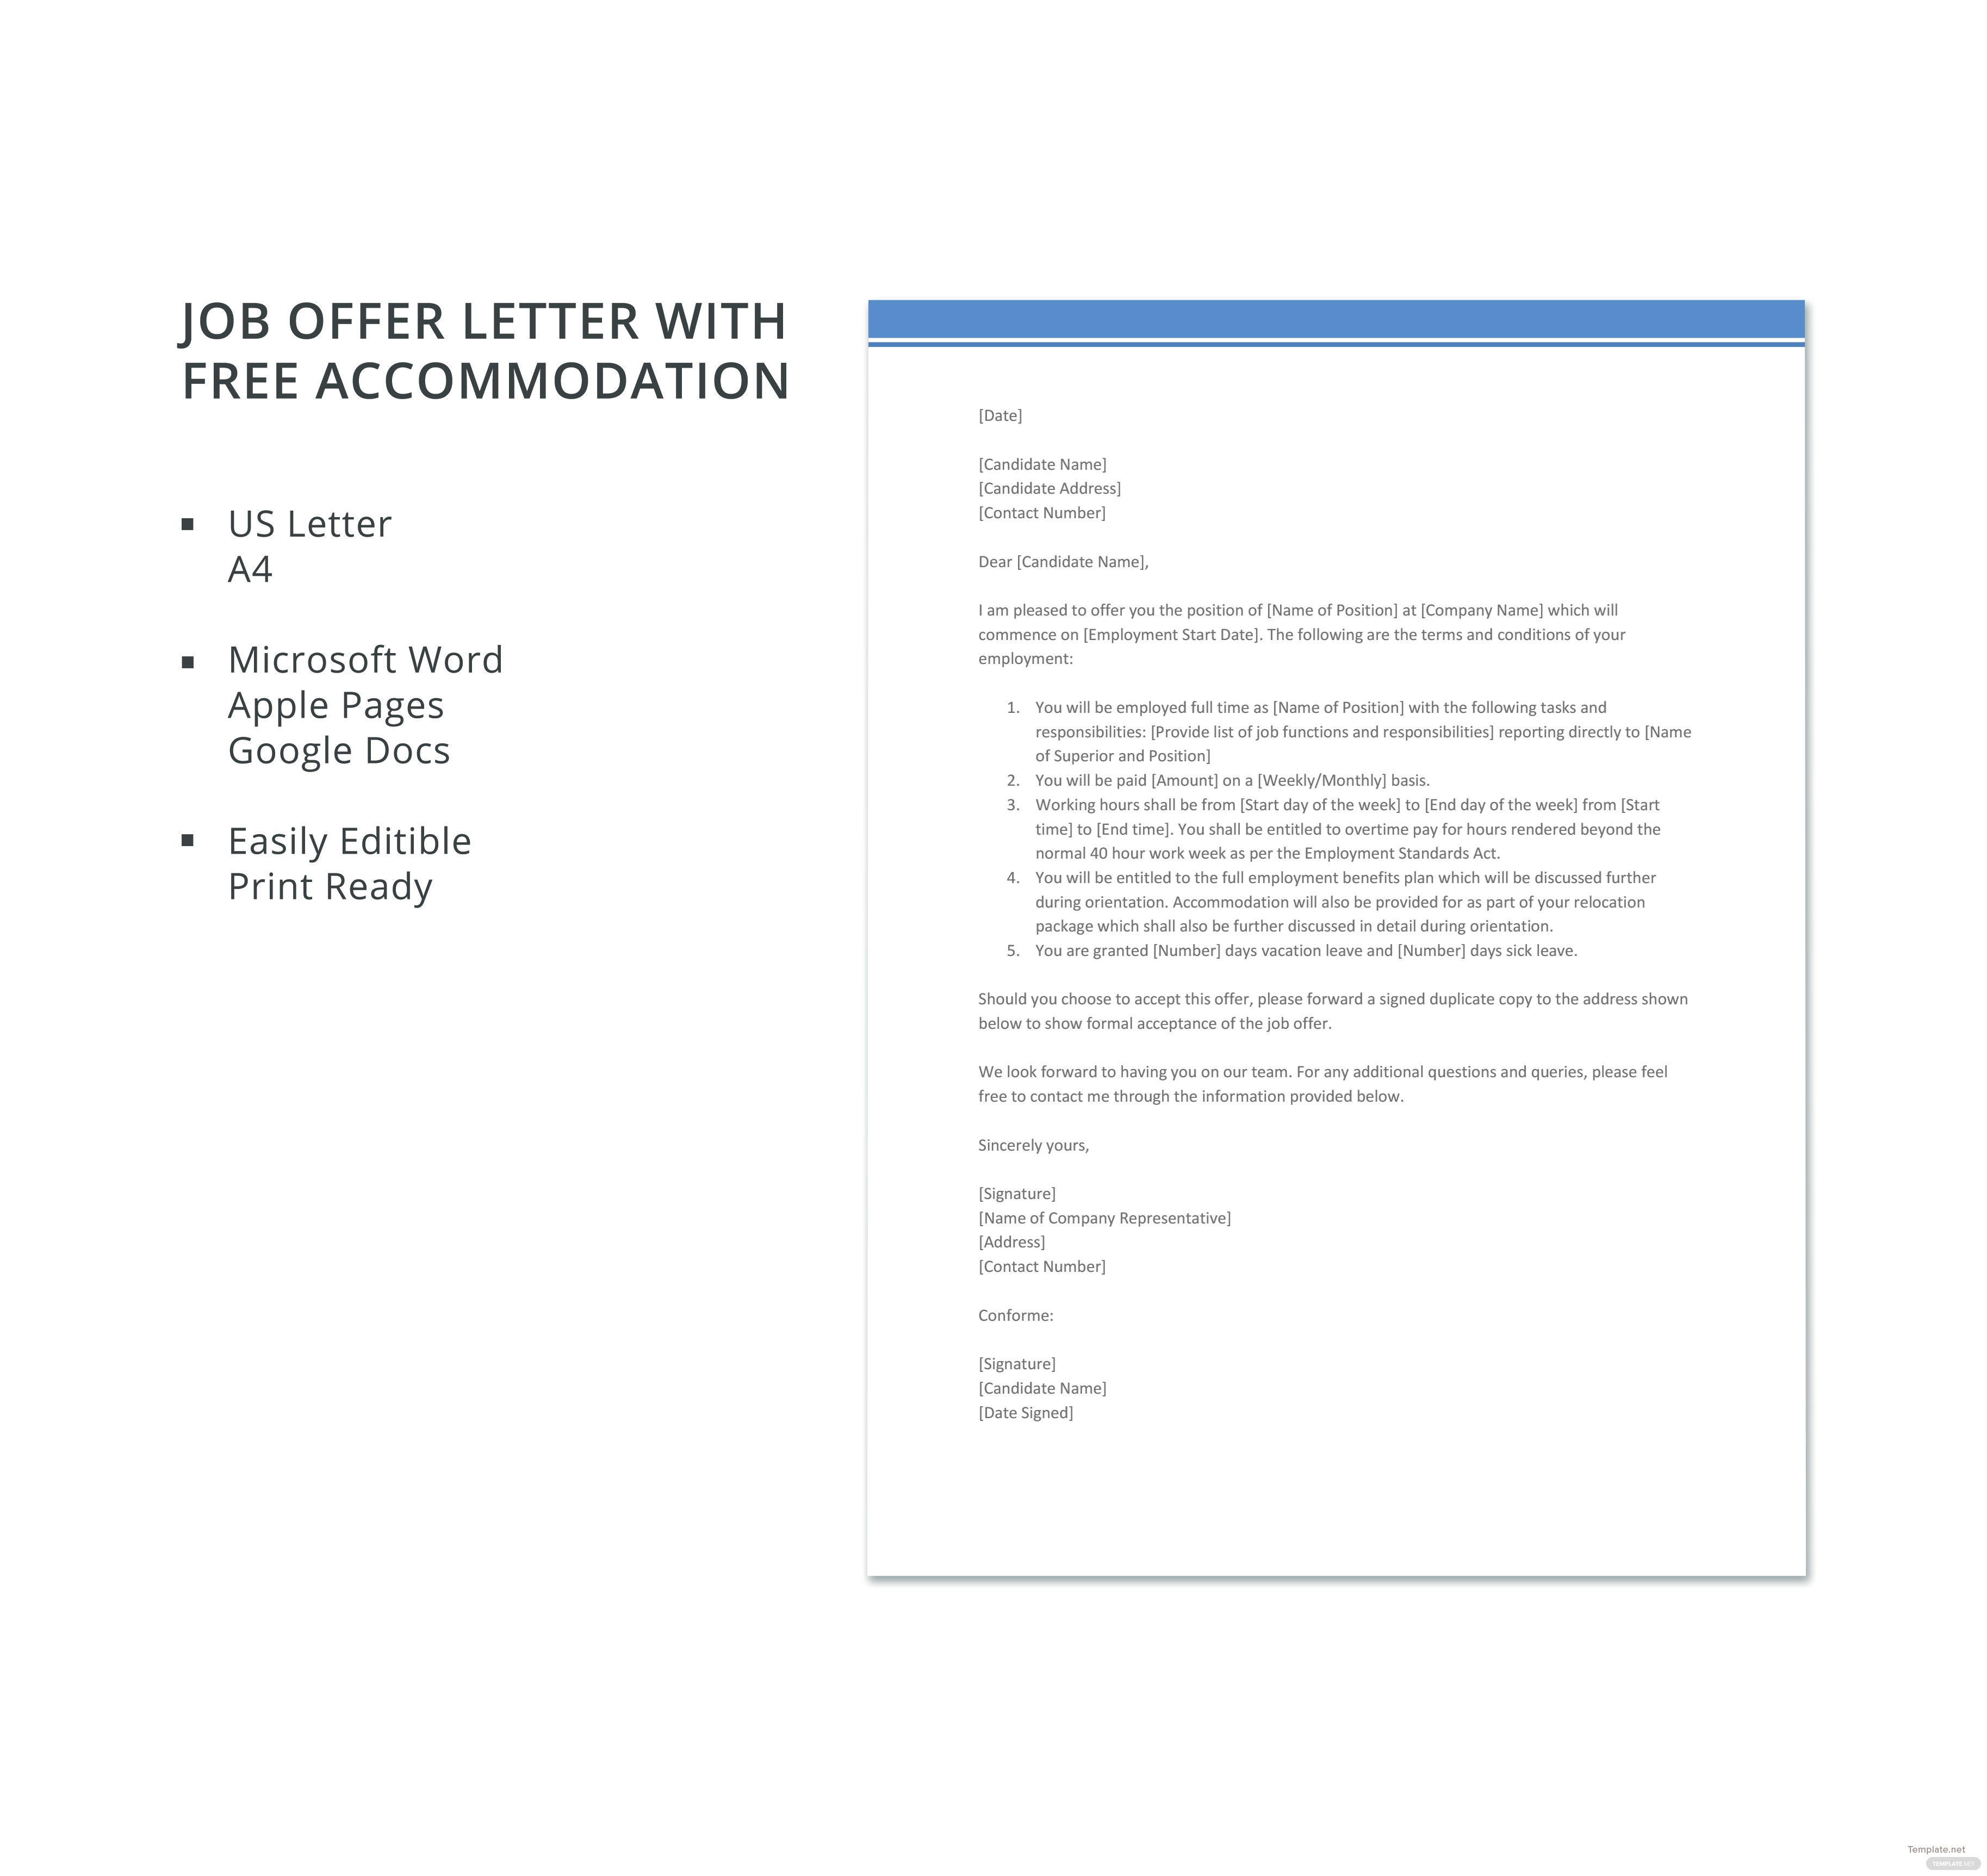 Job offer letter with free accommodation template in microsoft word job offer letter with free accommodation template altavistaventures Images